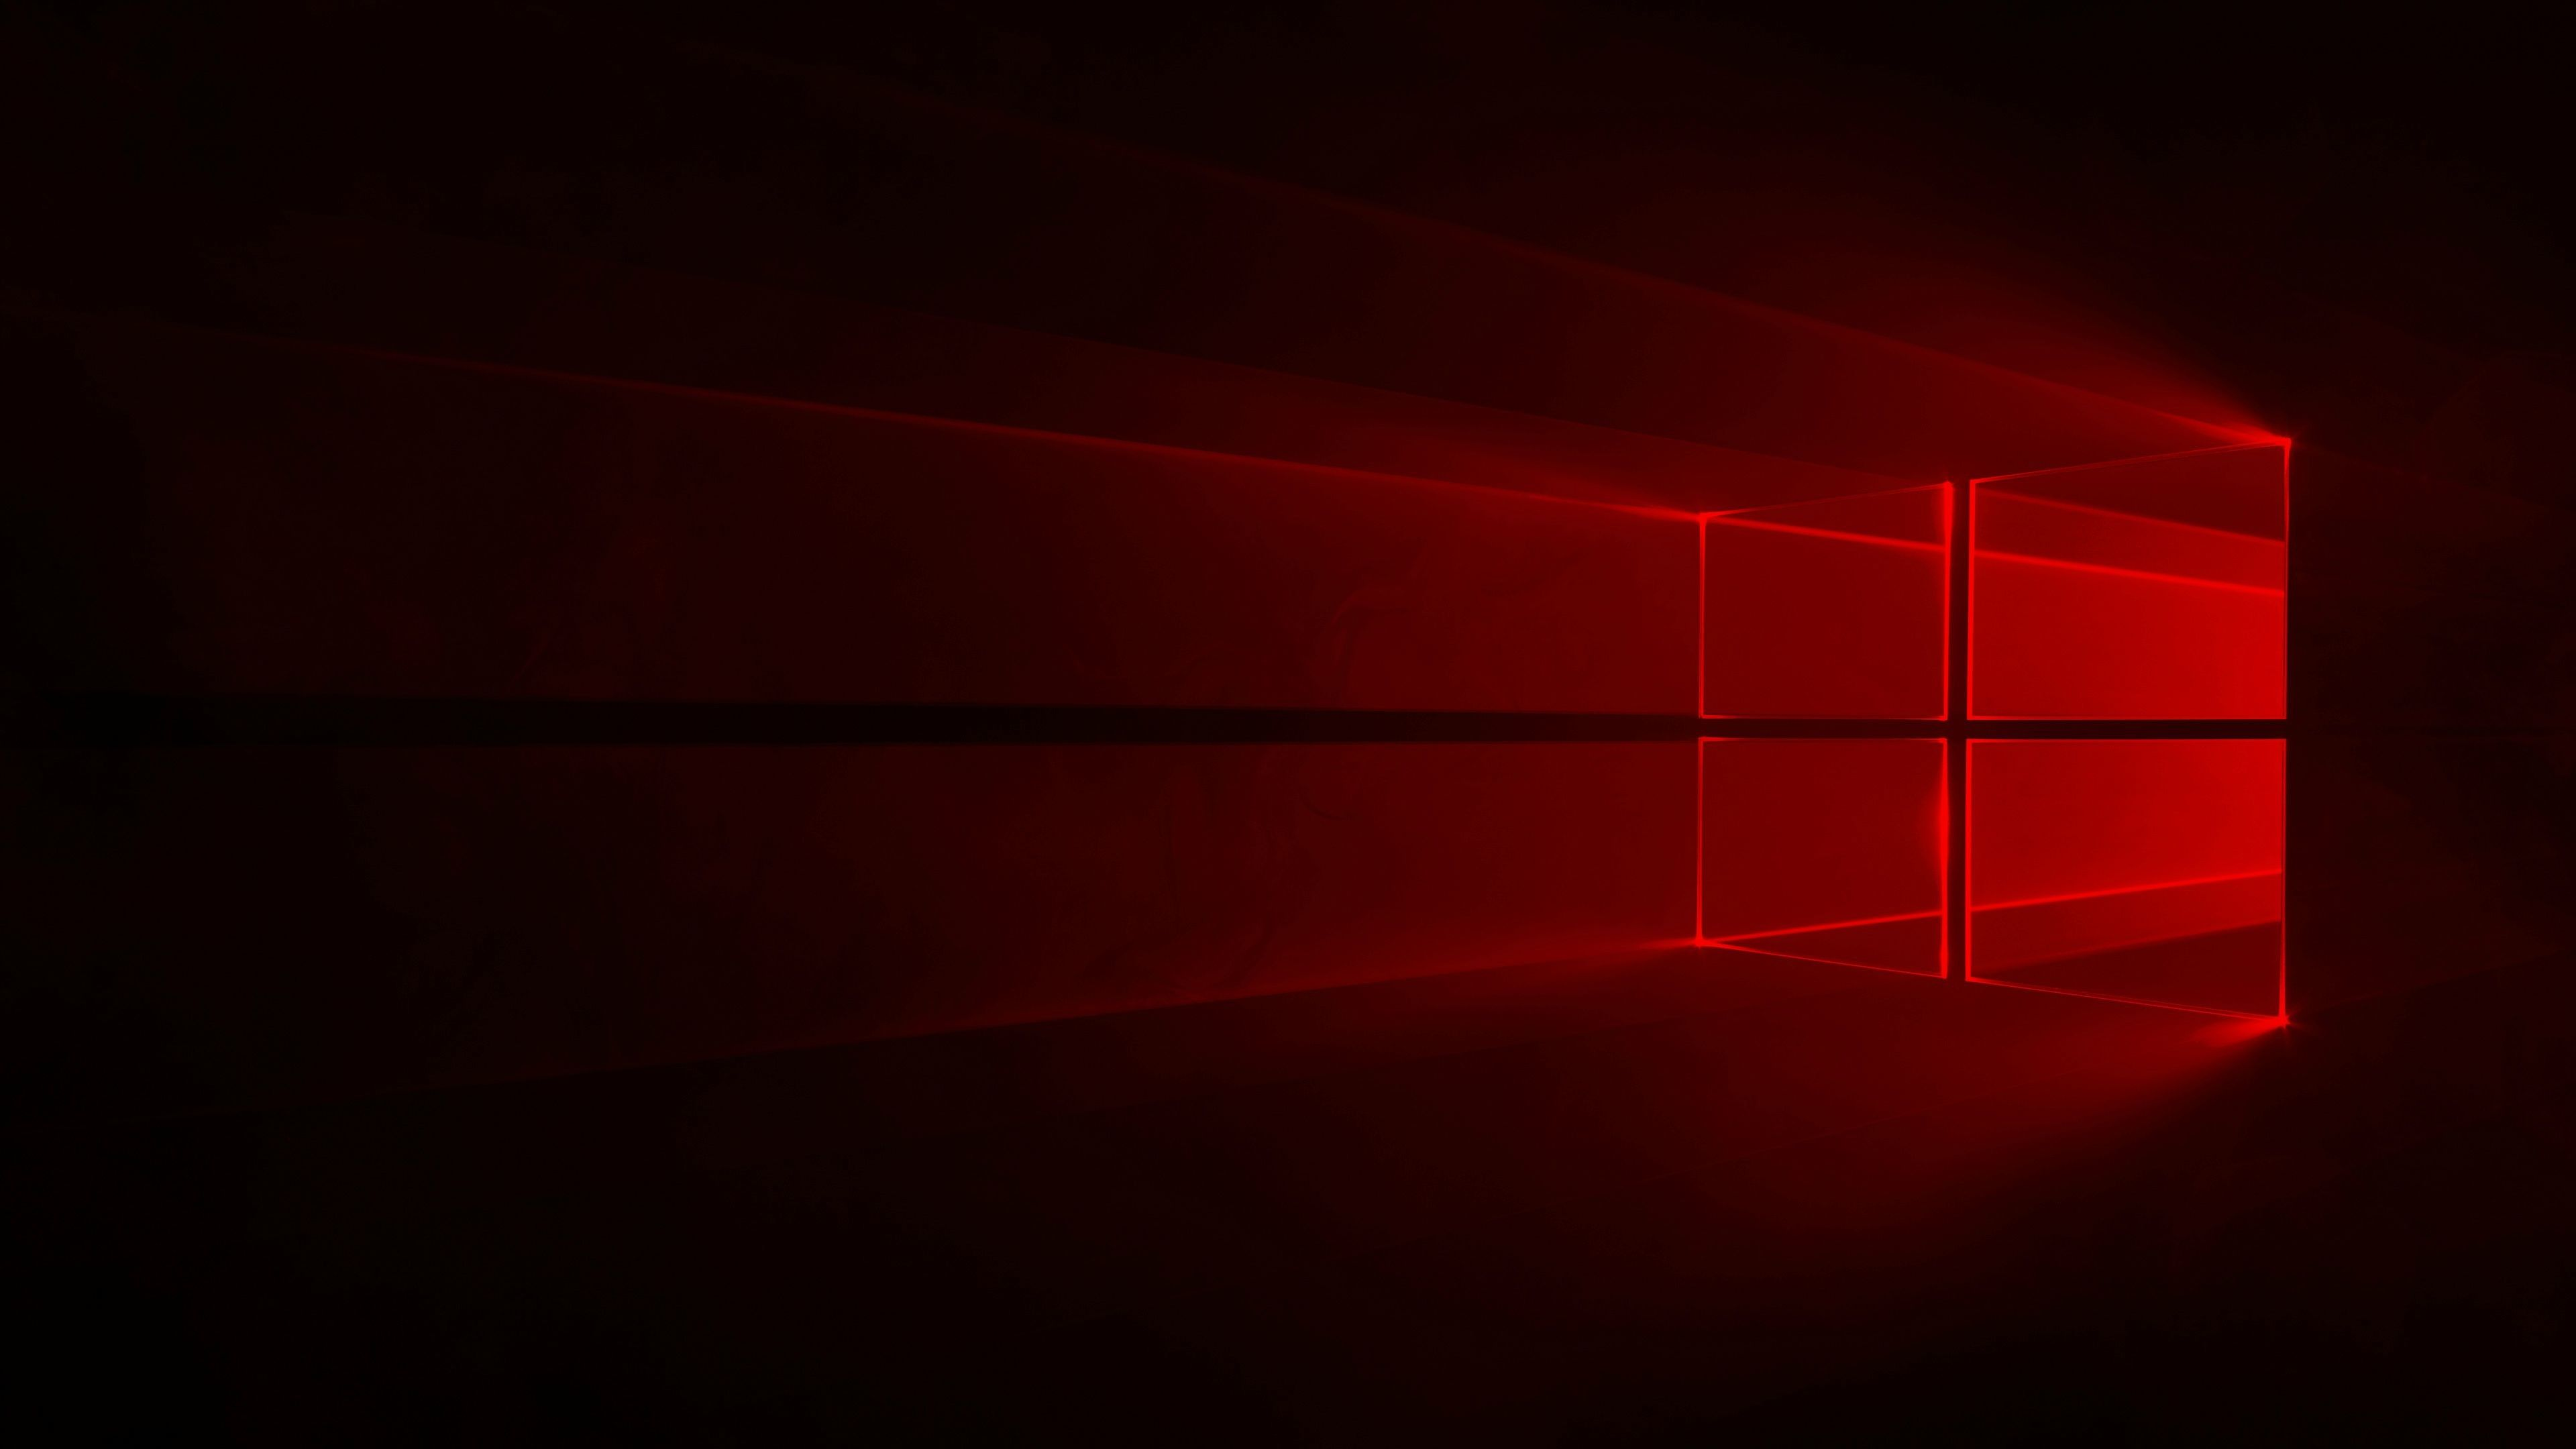 Red Windows Wallpapers - Top Free Red Windows Backgrounds